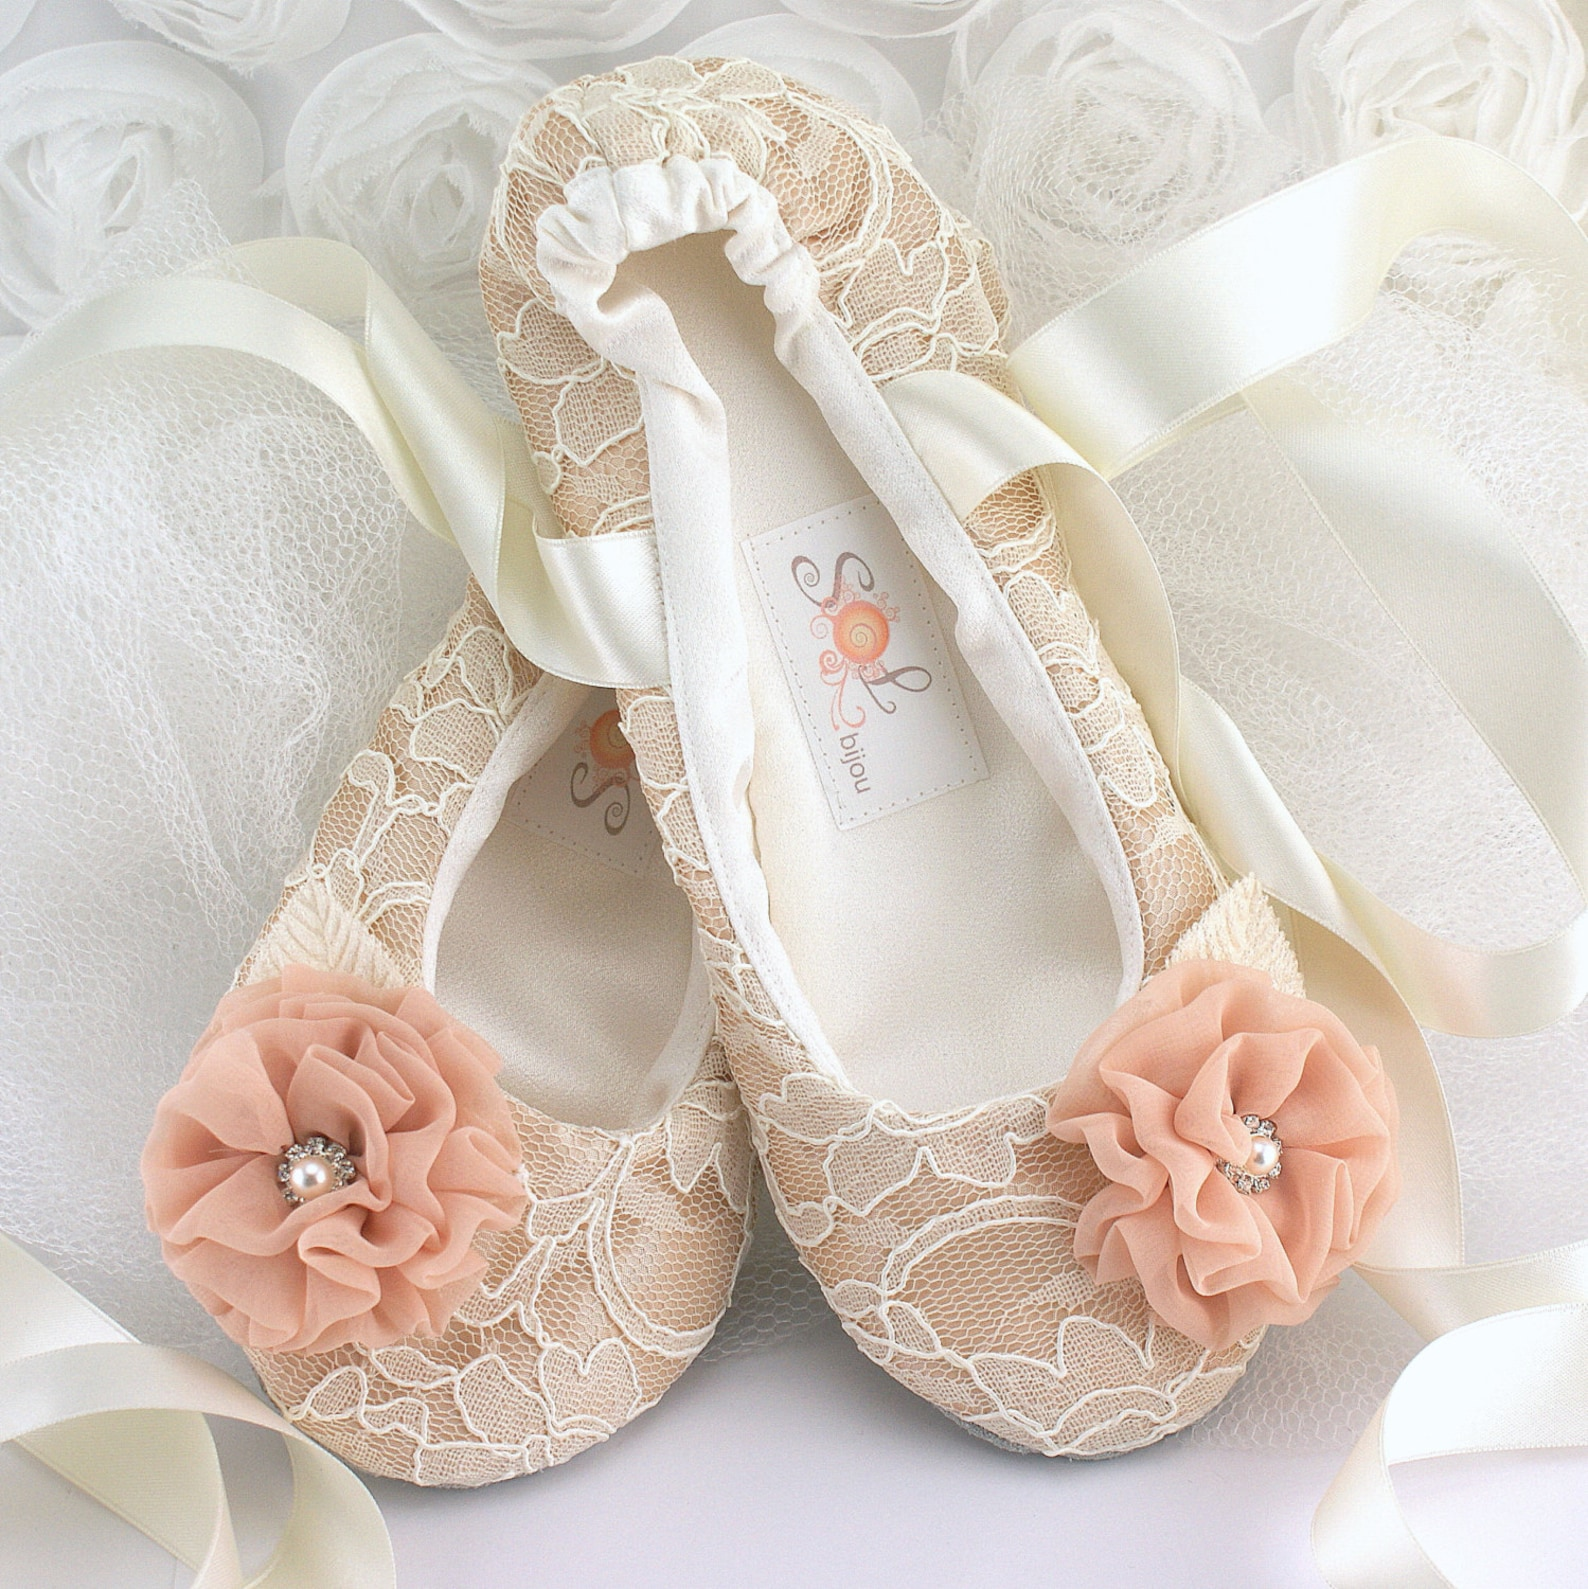 lace ballet flats,rose flats,pink flats,ivory,ballet slippers,wedding flats,flower girl flats,elegant,bridal shoes,ballerina sli